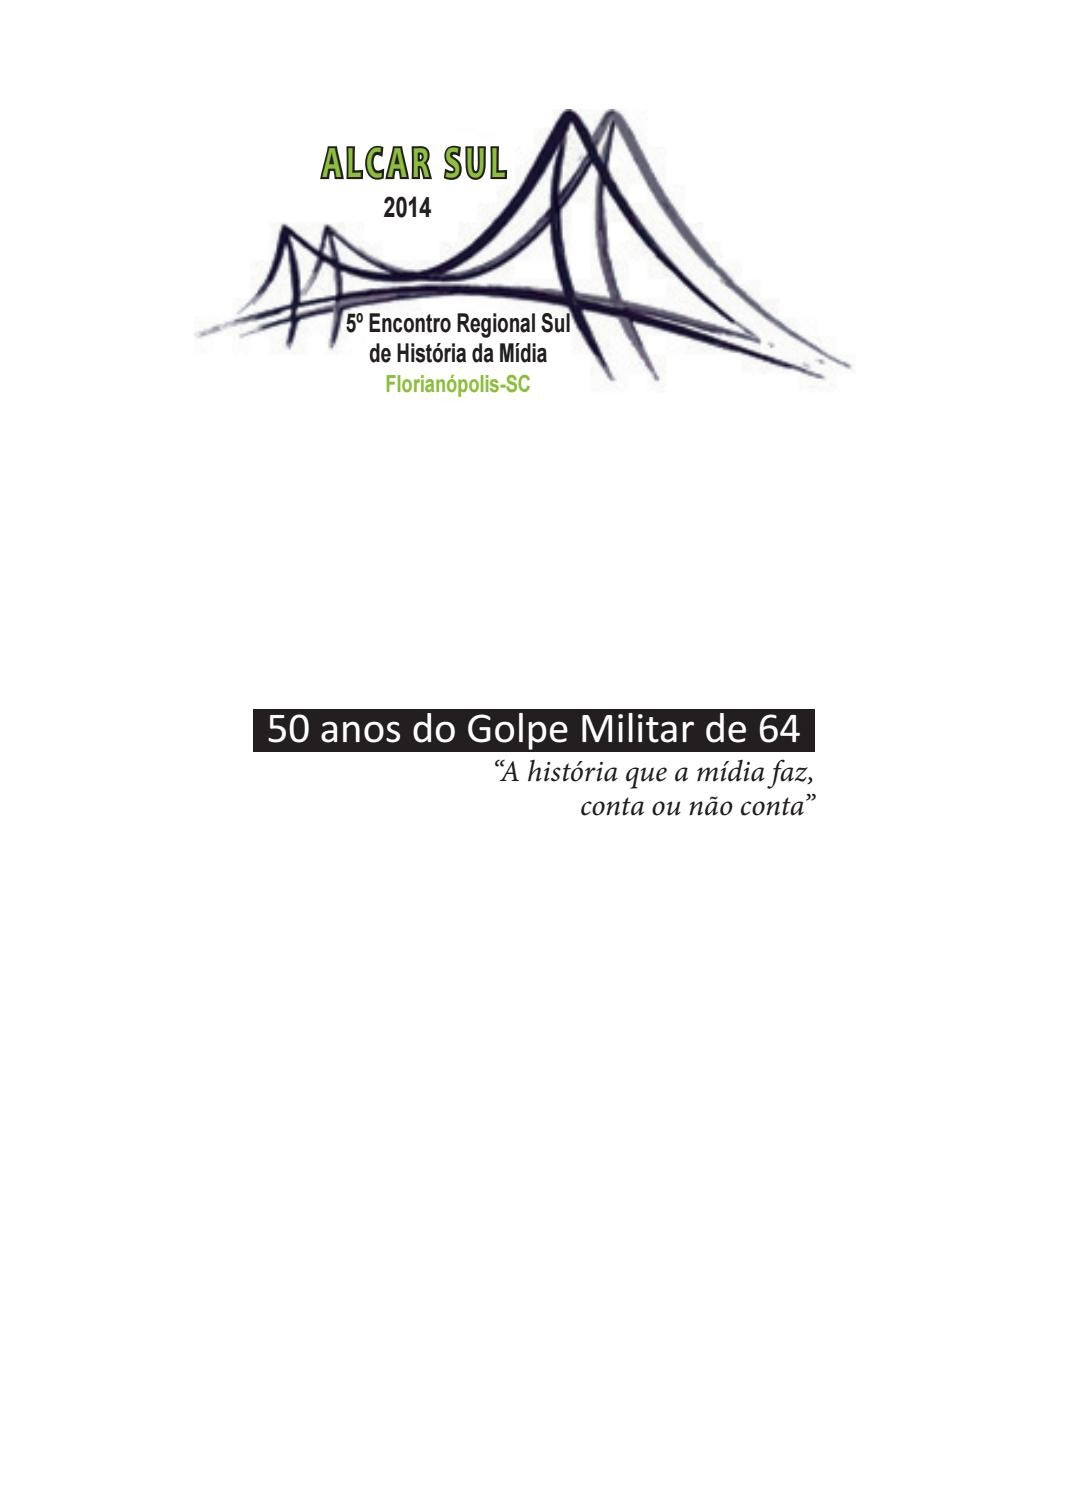 dfd3fb1da65cd 50 anos do golpe militar alcar p 1 410 continua by Editora Insular - issuu